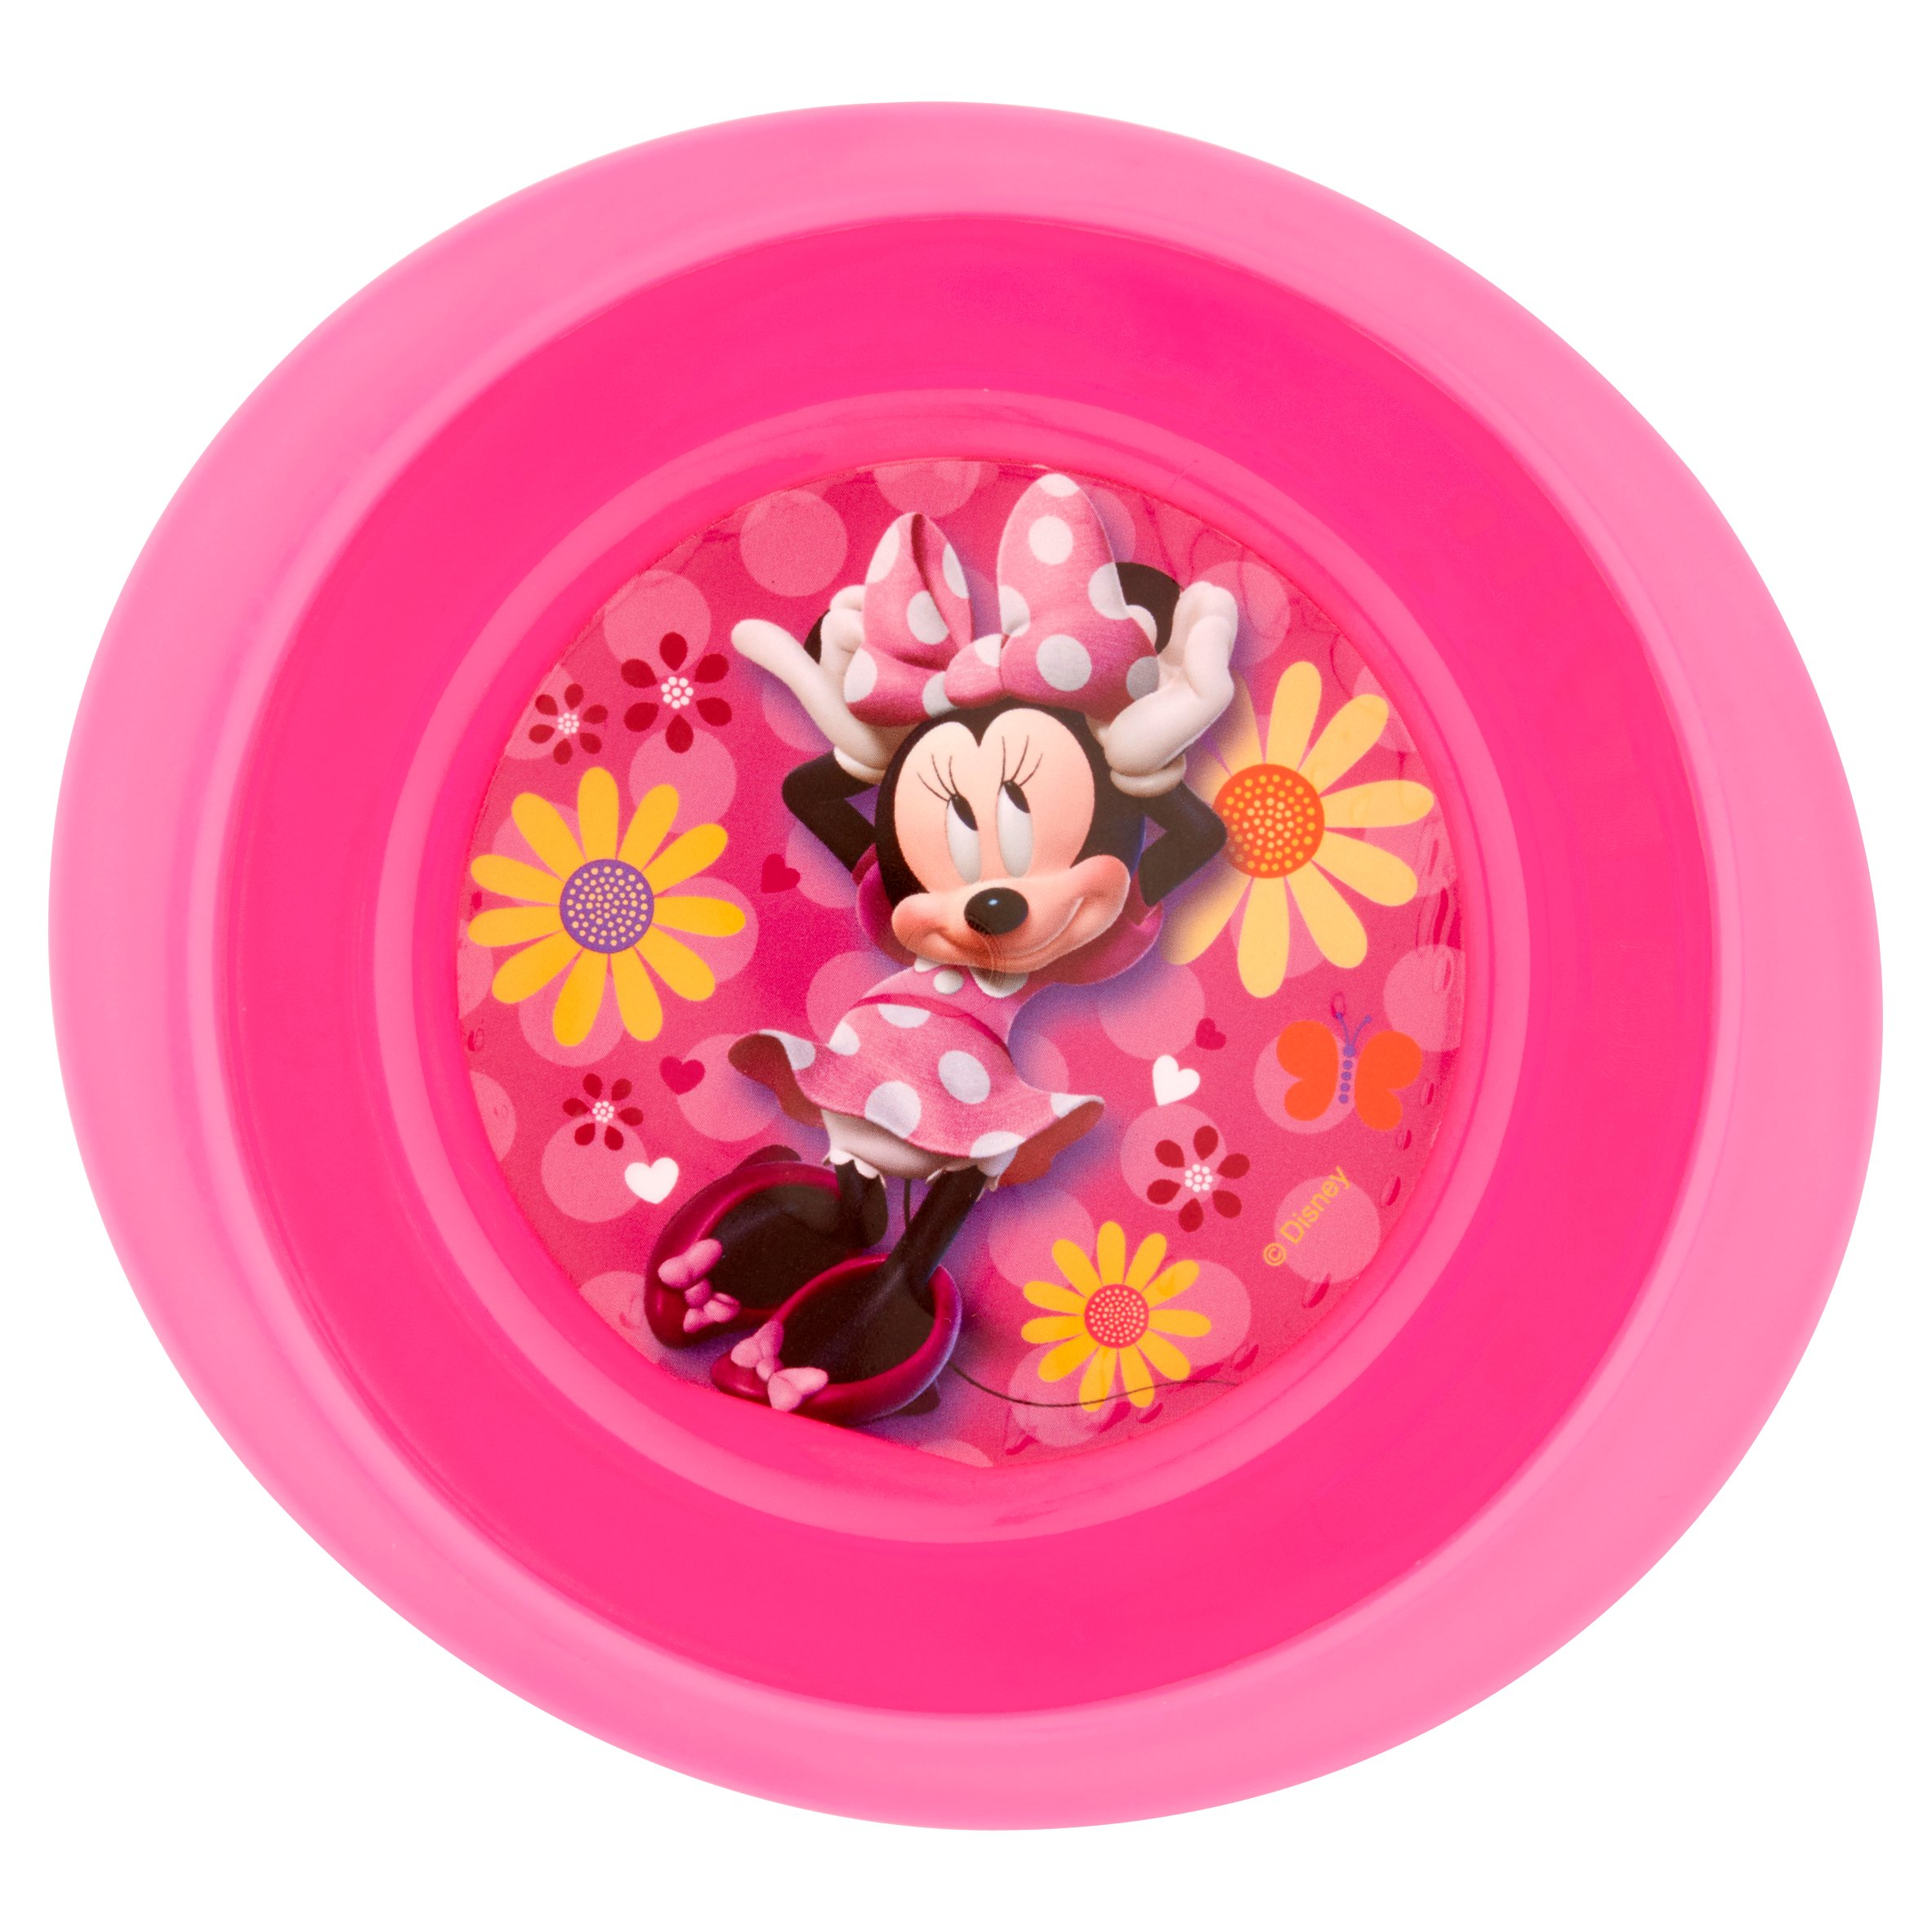 The First Years Minnie Mouse Toddler Plate